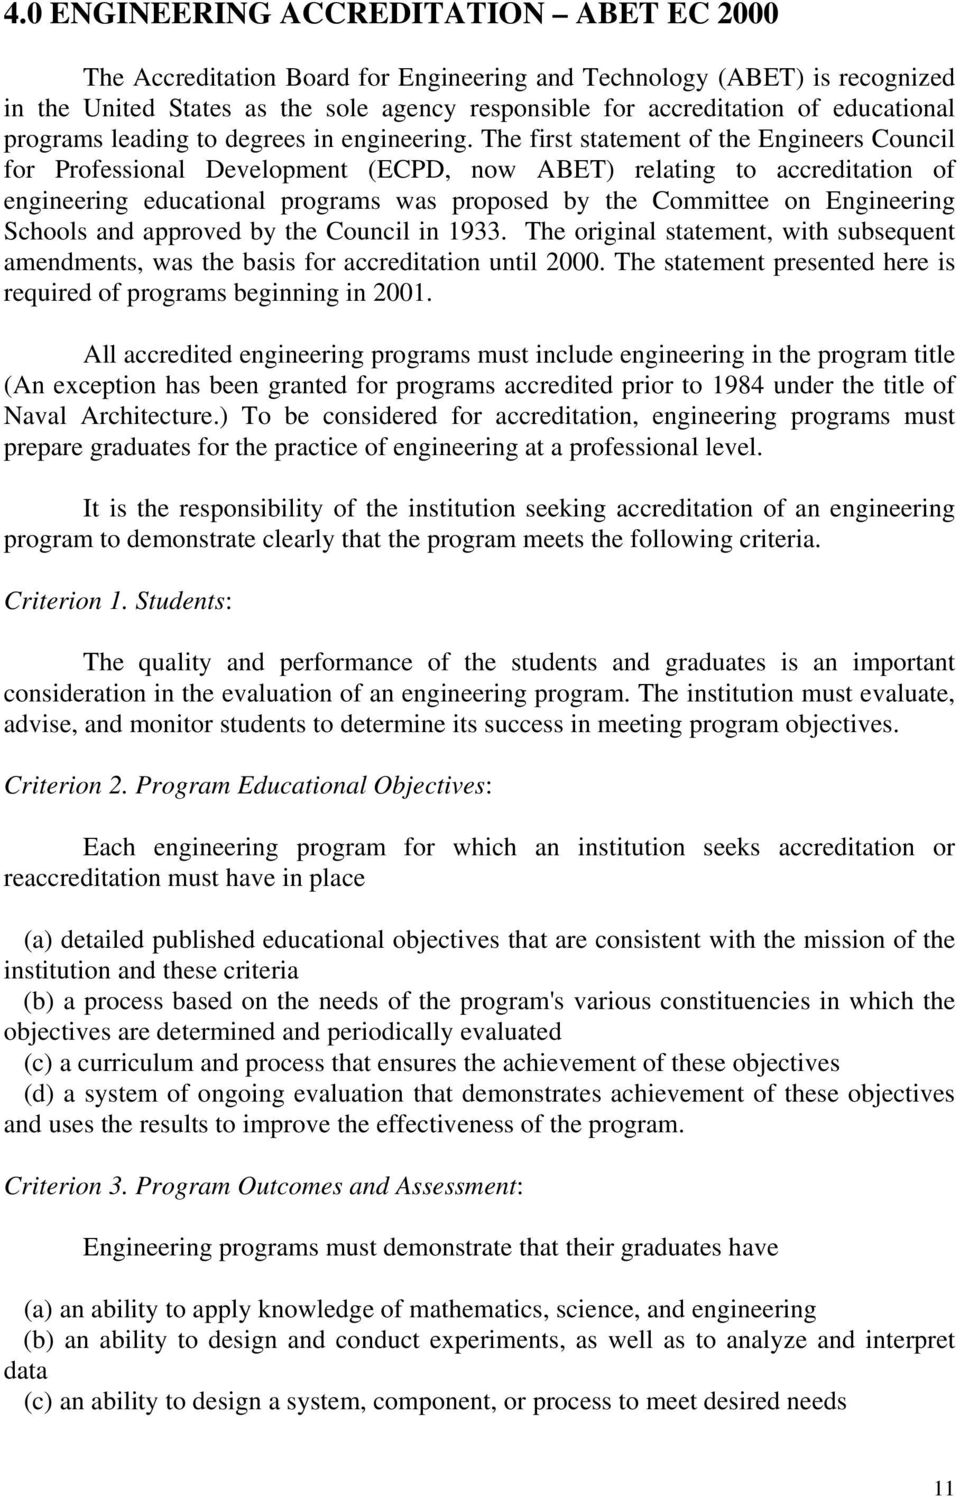 The first statement of the Engineers Council for Professional Development (ECPD, now ABET) relating to accreditation of engineering educational programs was proposed by the Committee on Engineering